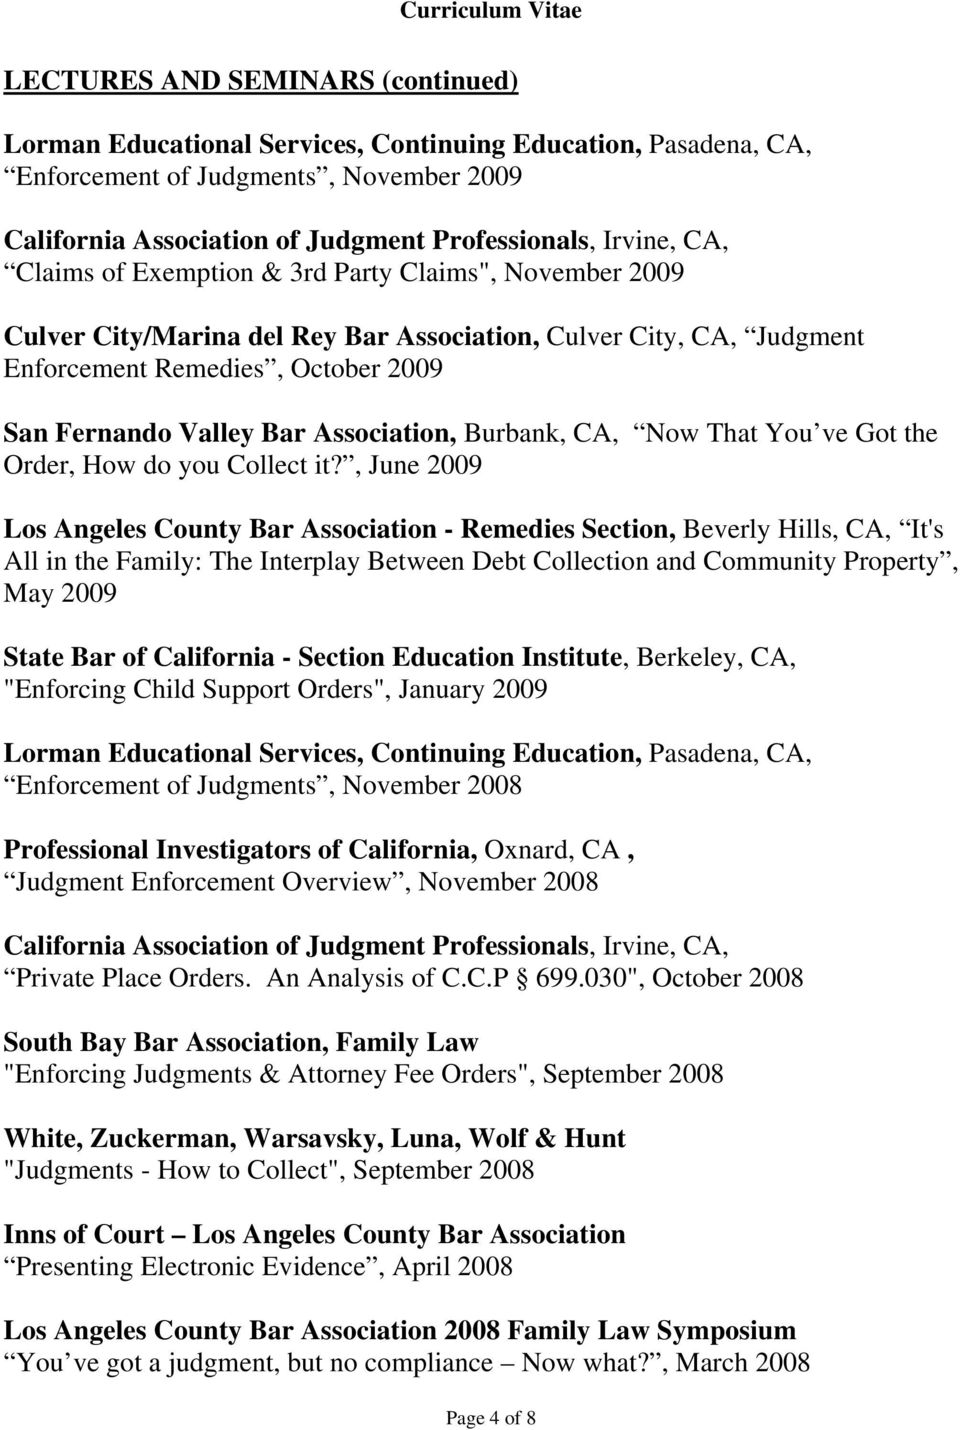 it?, June 2009 Los Angeles County Bar Association - Remedies Section, Beverly Hills, CA, It's All in the Family: The Interplay Between Debt Collection and Community Property, May 2009 State Bar of